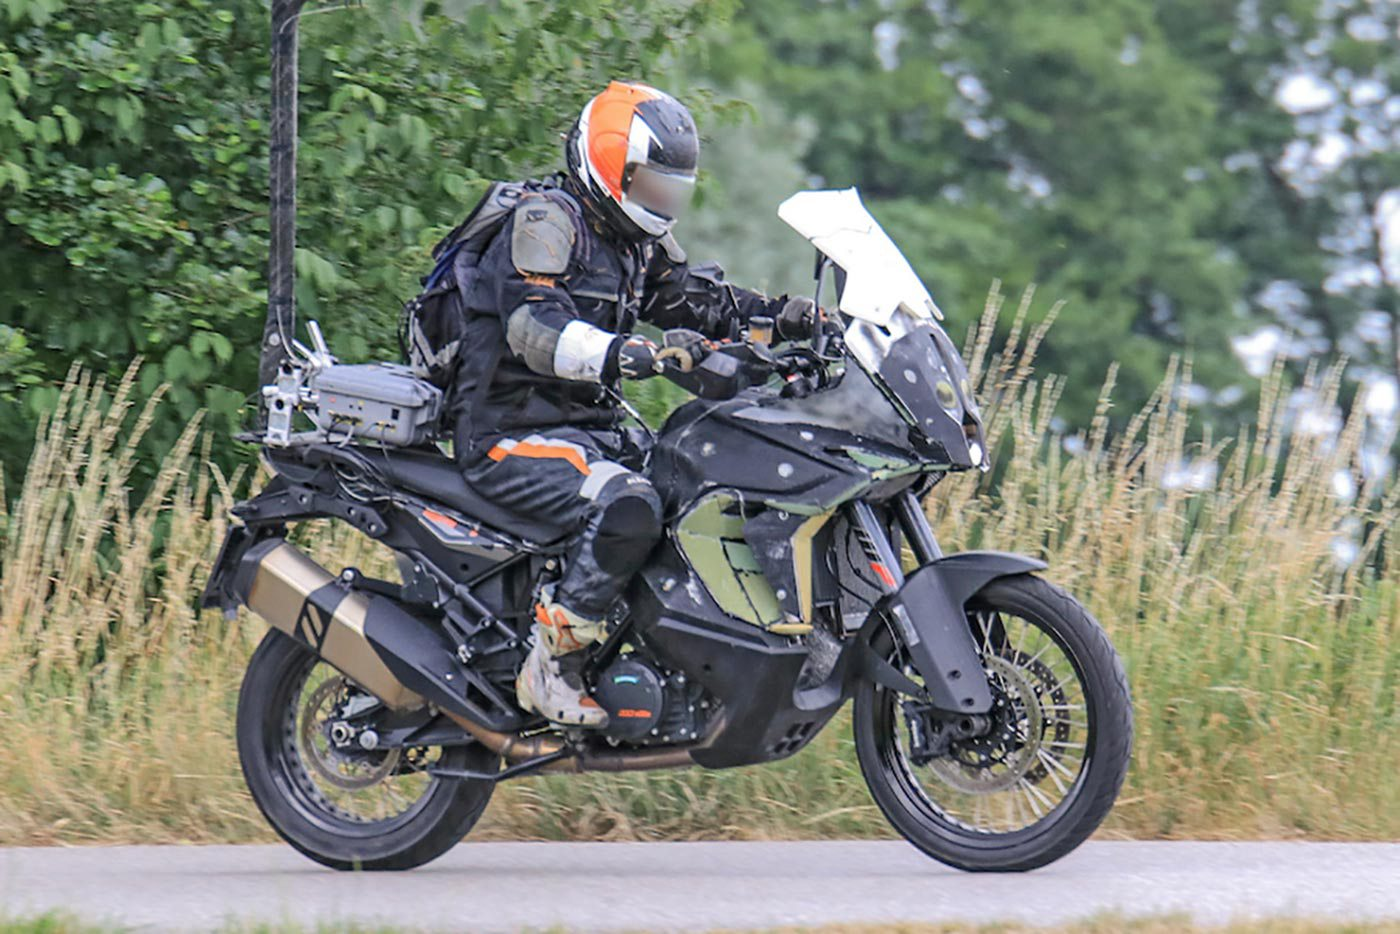 KTM updating the 1090 Adventure for 2019